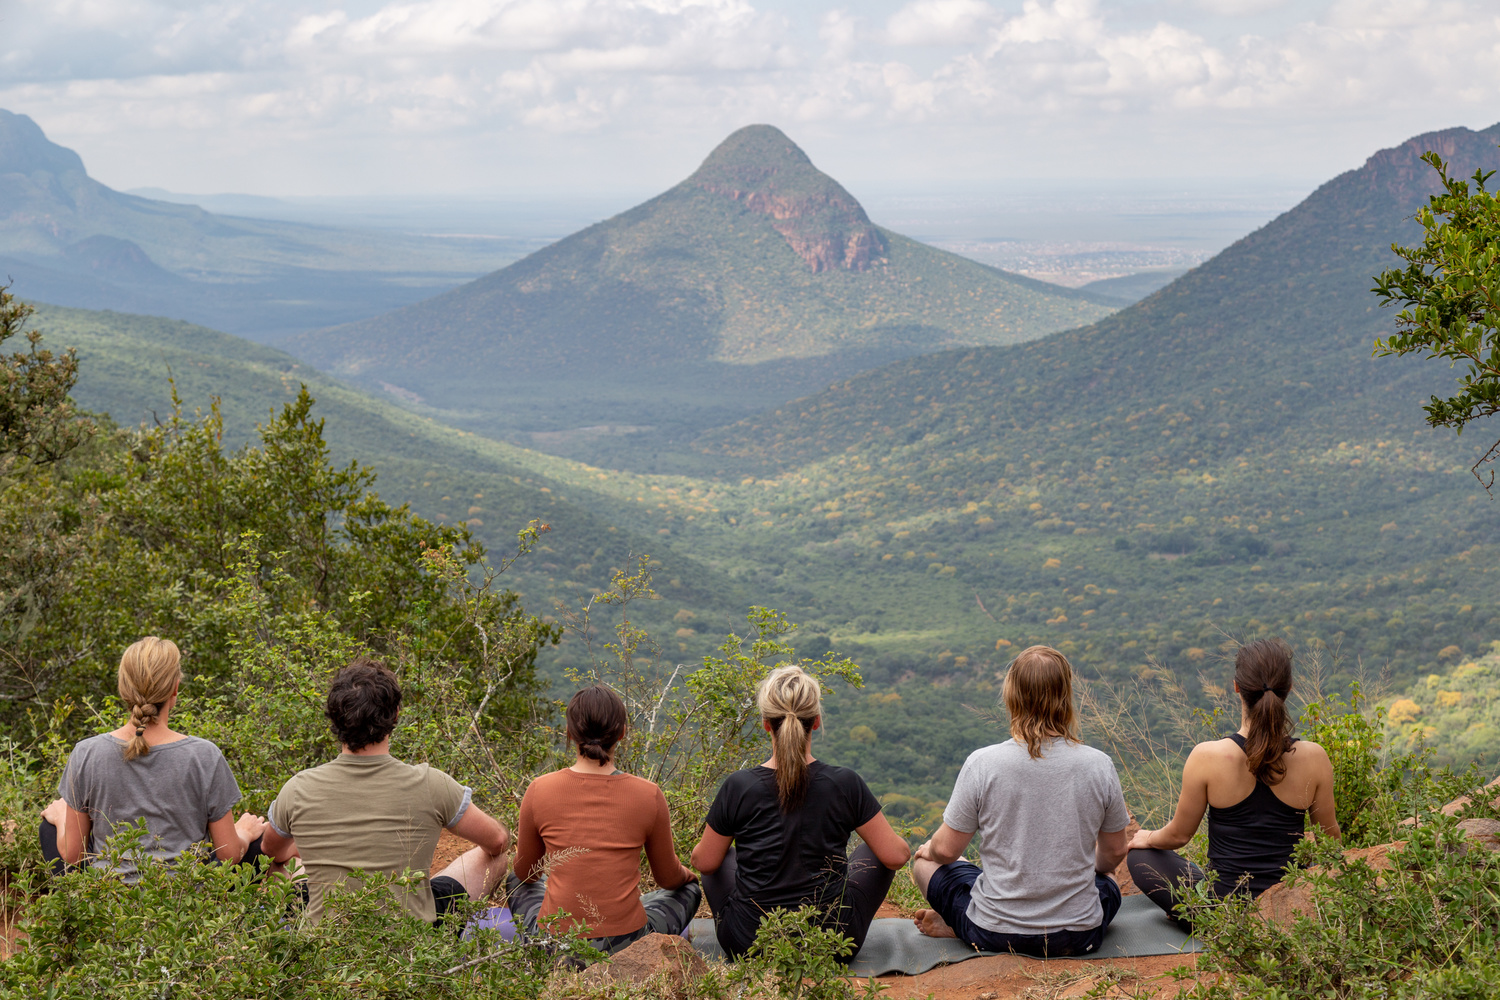 group of people sit meditating overlooking a beautiful vista with a valley and mountains.